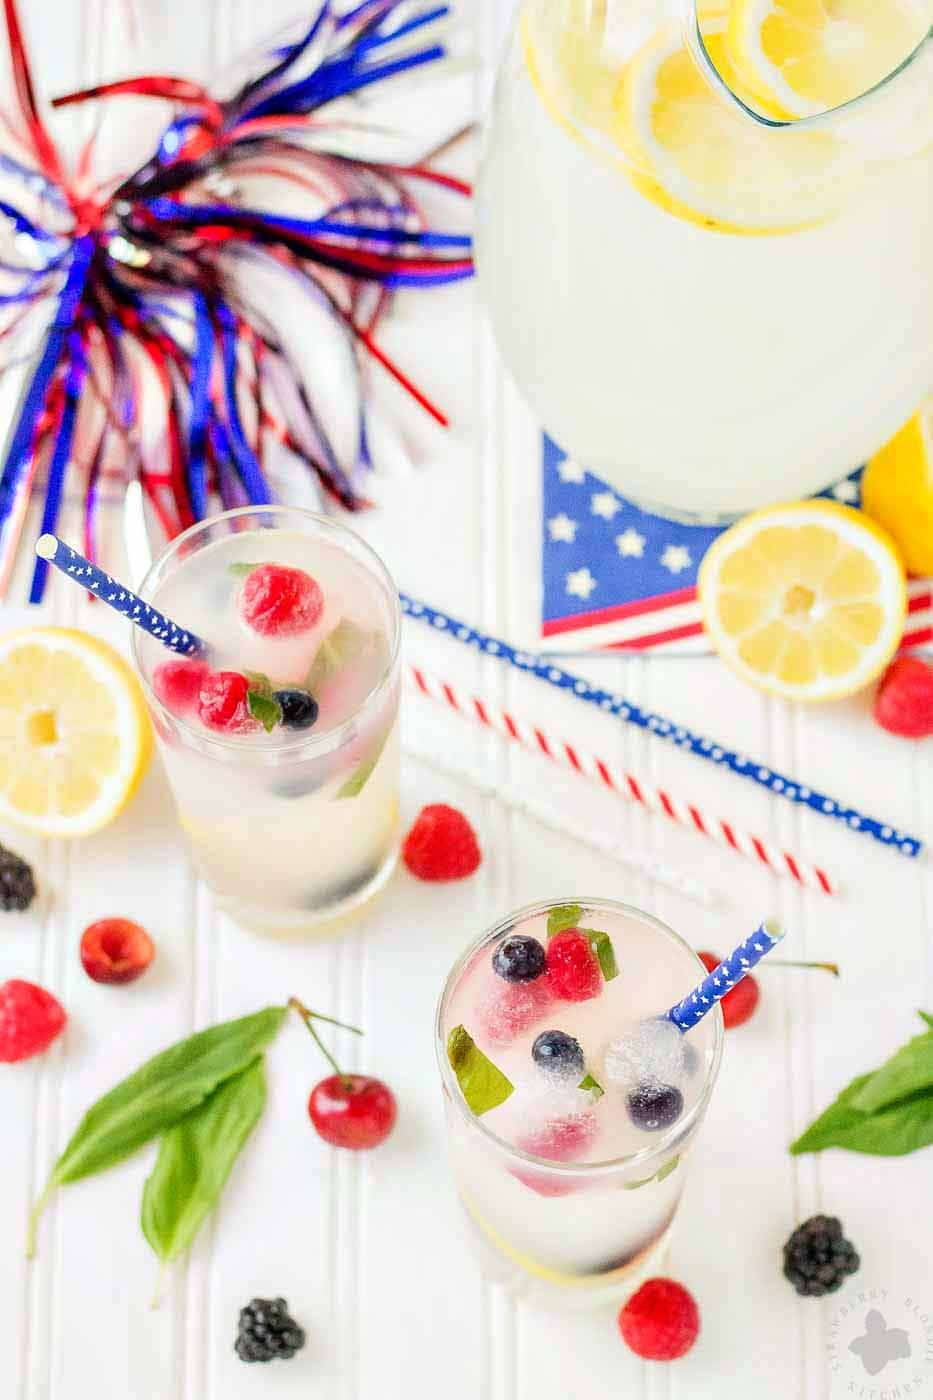 Refreshing and delicious, this Spiked Triple Berry Basil Lemonade is a perfect balance of sweet and tart. Smirnoff® Red, White and Berry vodka mixed with tart lemonade and fresh, sweet berries is the ultimate summertime cocktail! | Strawberry Blondie Kitchen